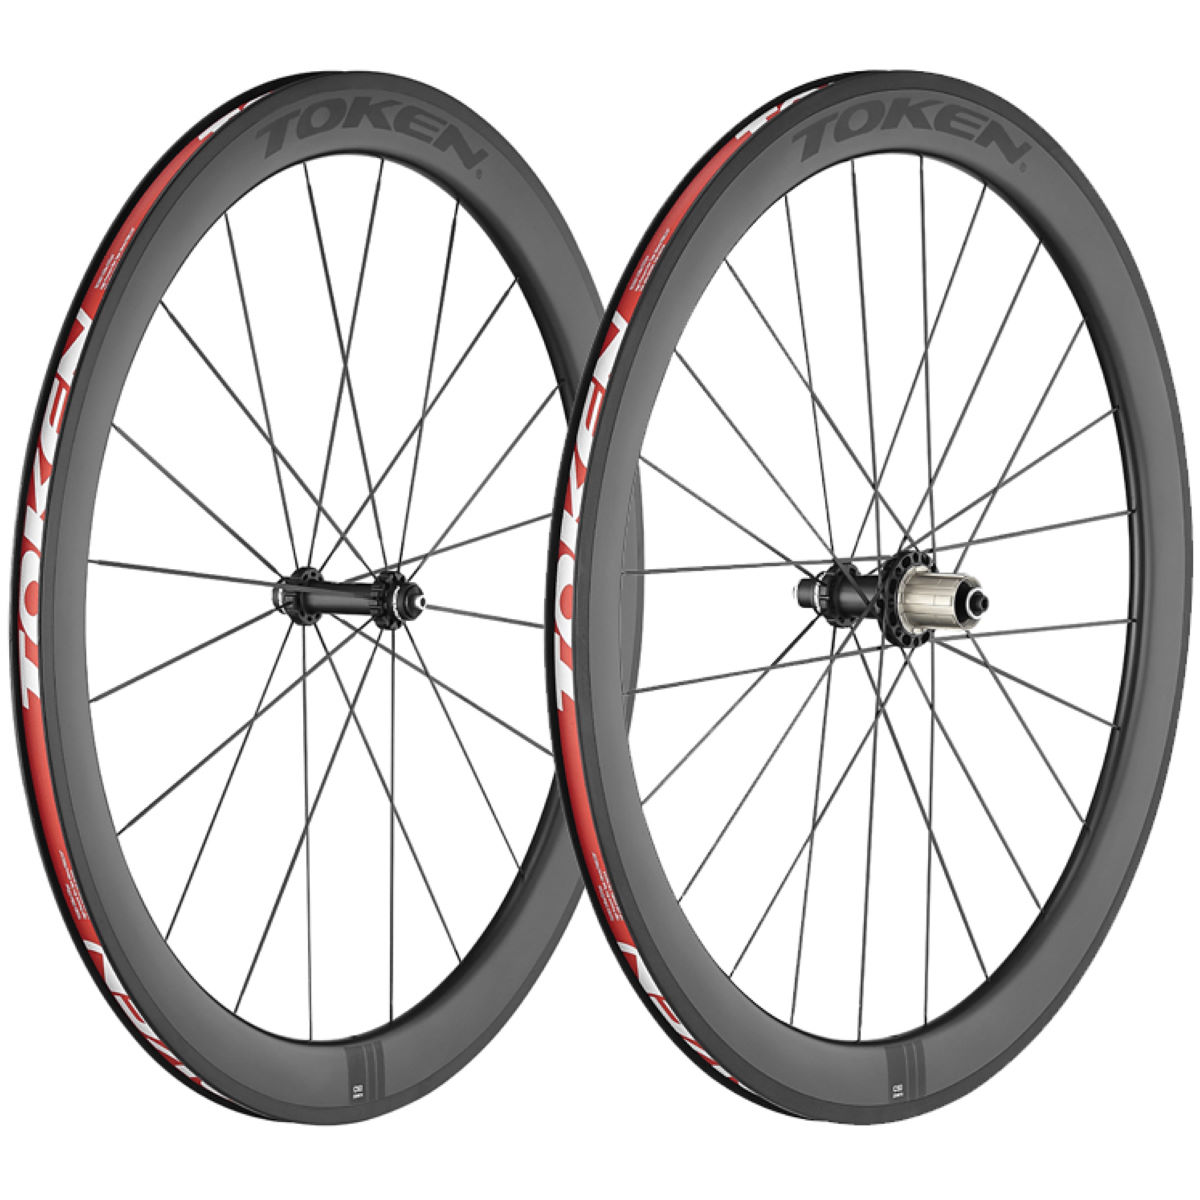 Token C50 Full Carbon wheelset (carbon, for deck) - Competition wheels